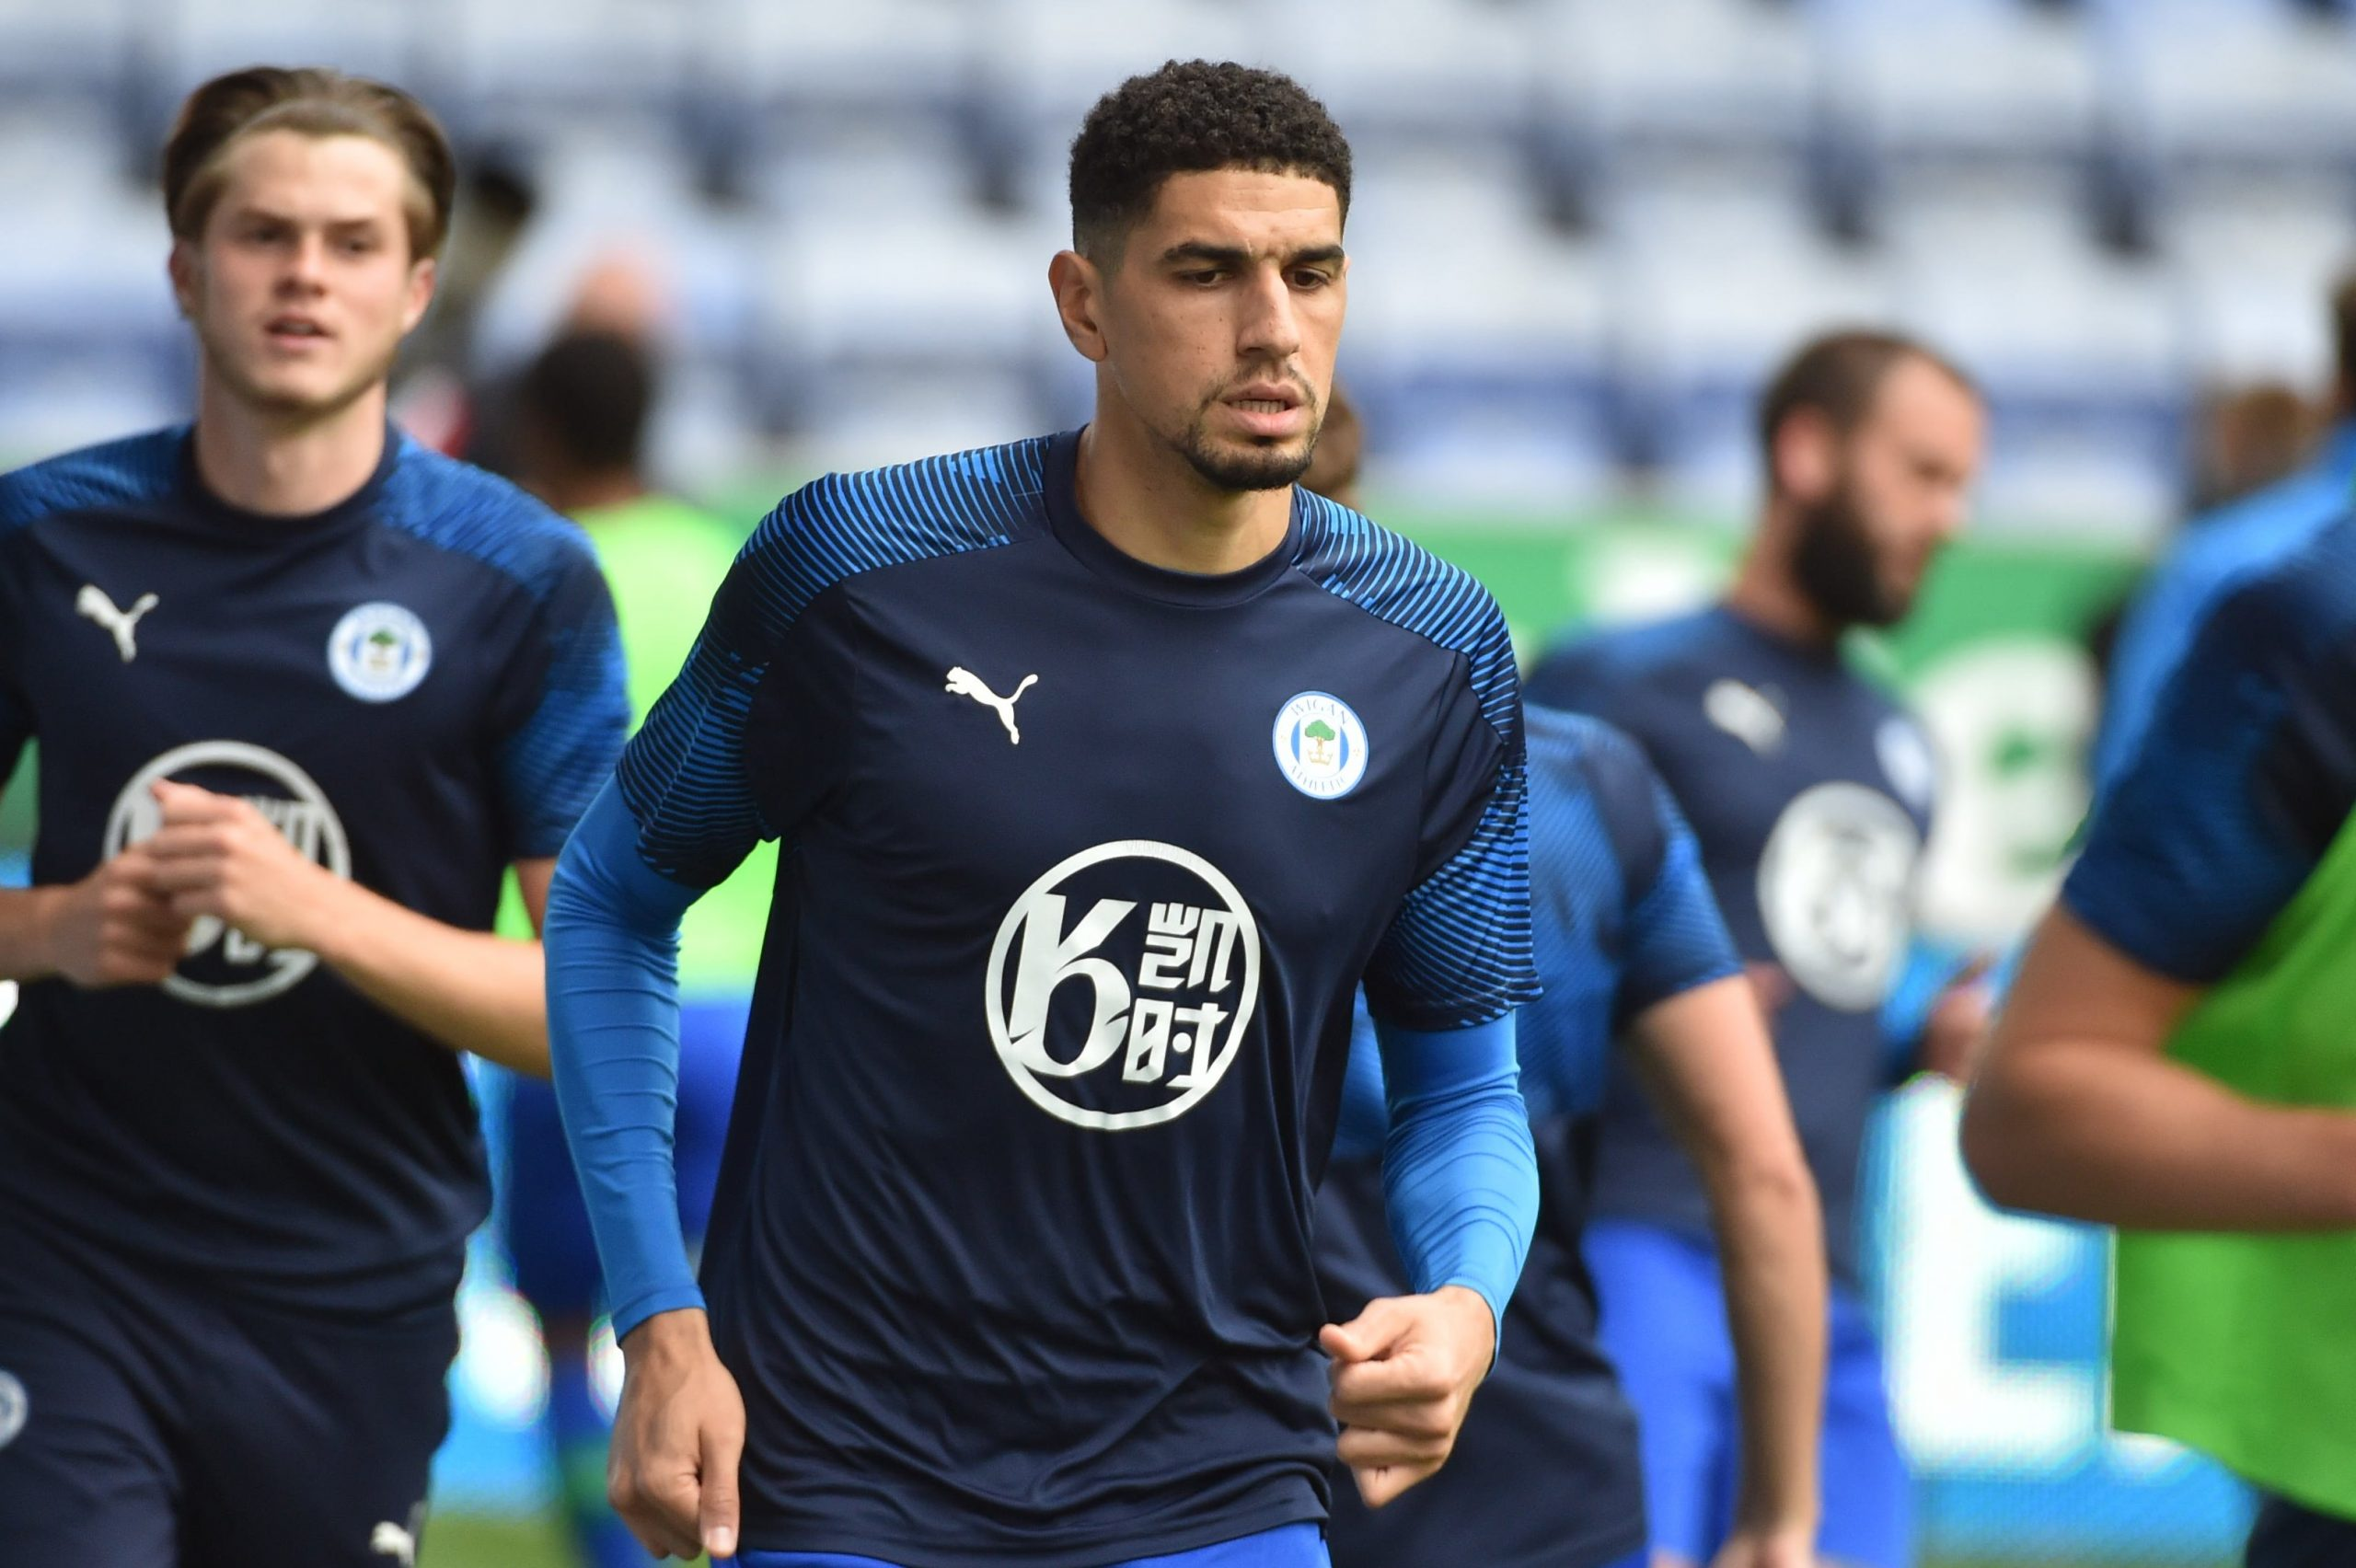 Eagles Roundup: Balogun Extends Winning Run With Wigan; Agu Grabs Assist For Guimaraes,  Omeruo Injured In Leganes' Loss To Sevilla